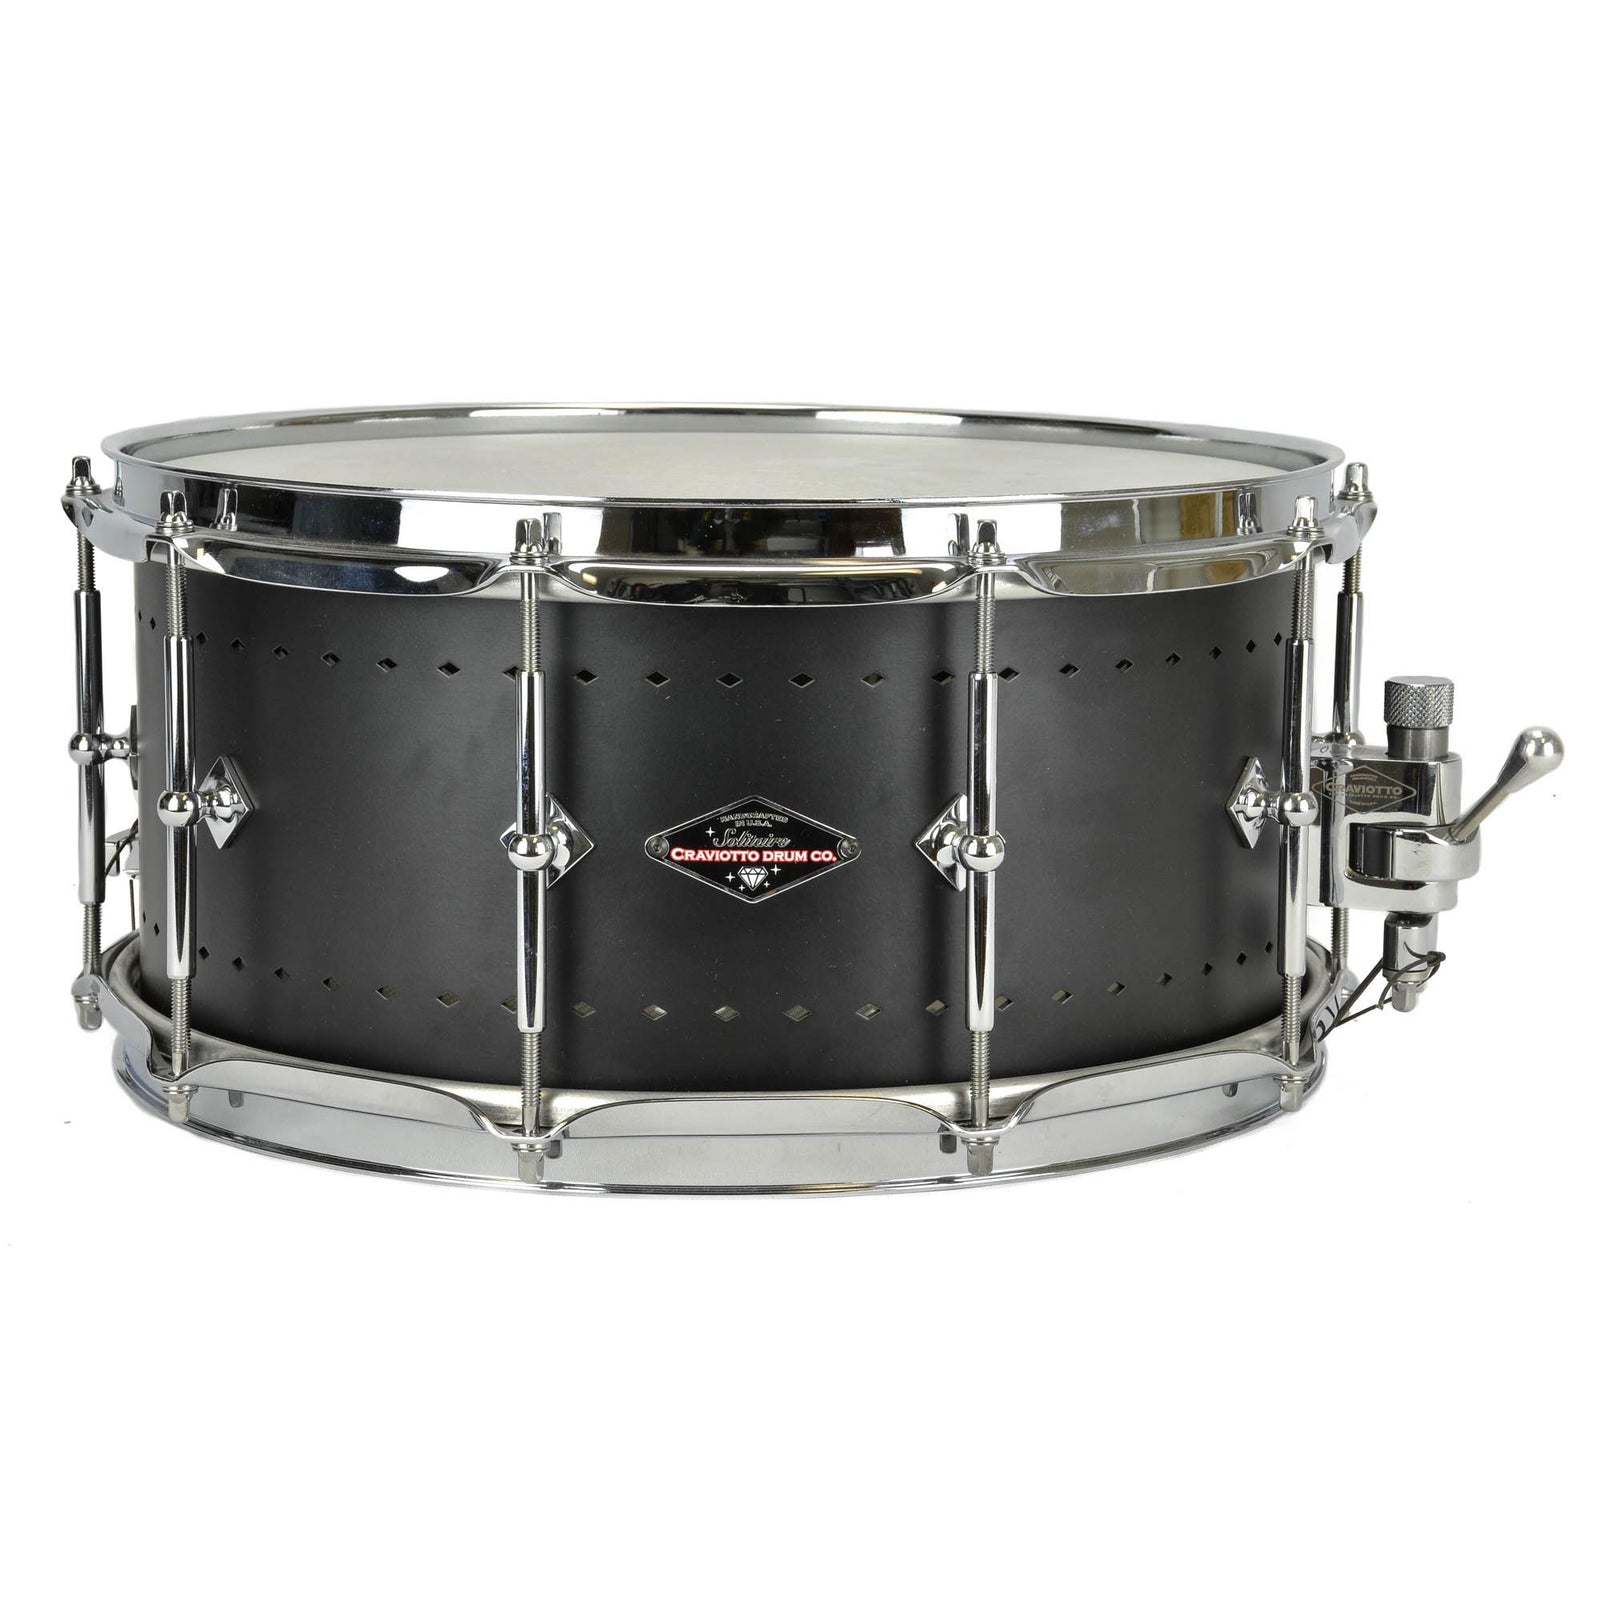 "Craviotto 6.5x14"" Solitaire Snare - Matte Black"